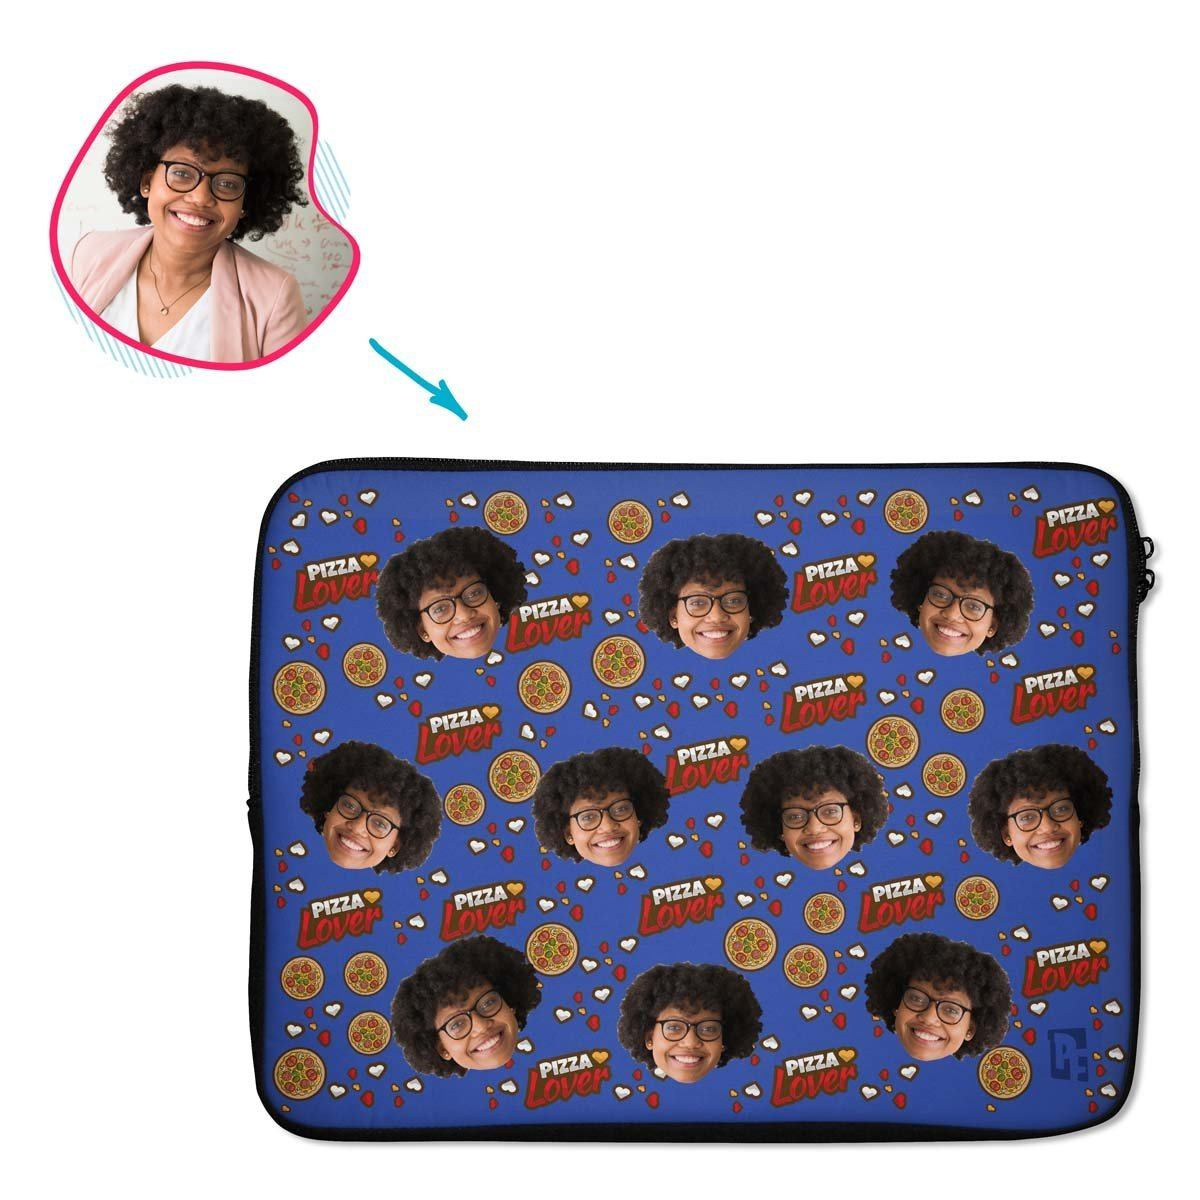 darkblue Pizza Lover laptop sleeve personalized with photo of face printed on them